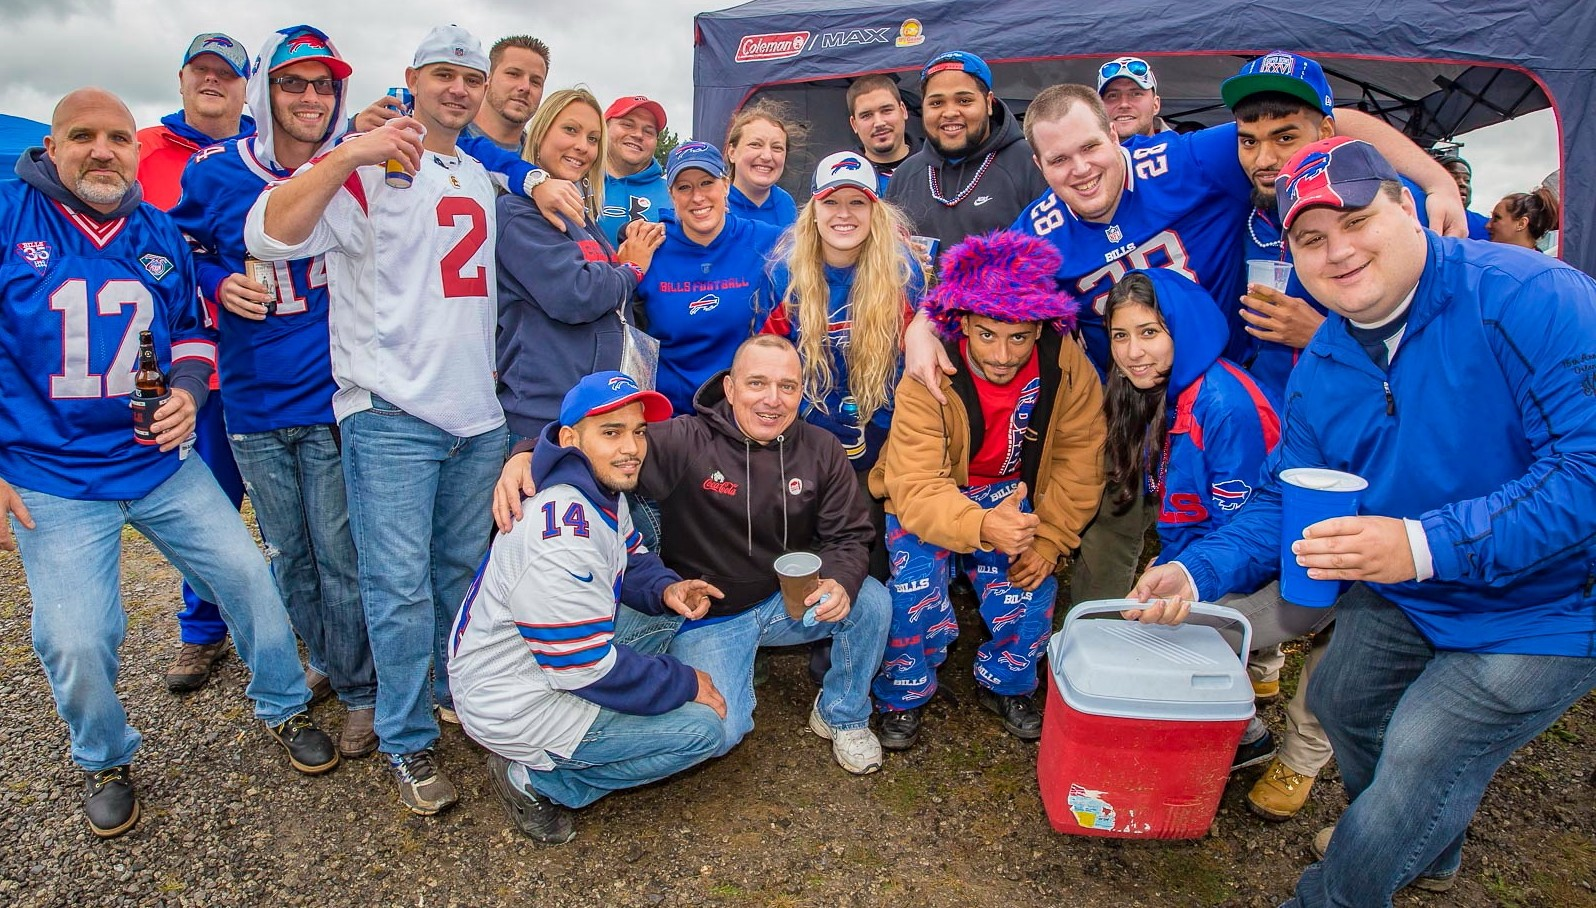 Tailgating is a proud tradition in Western New York, and Bills fans have been recognized for it by a national website. (Don Nieman/Special to The News)